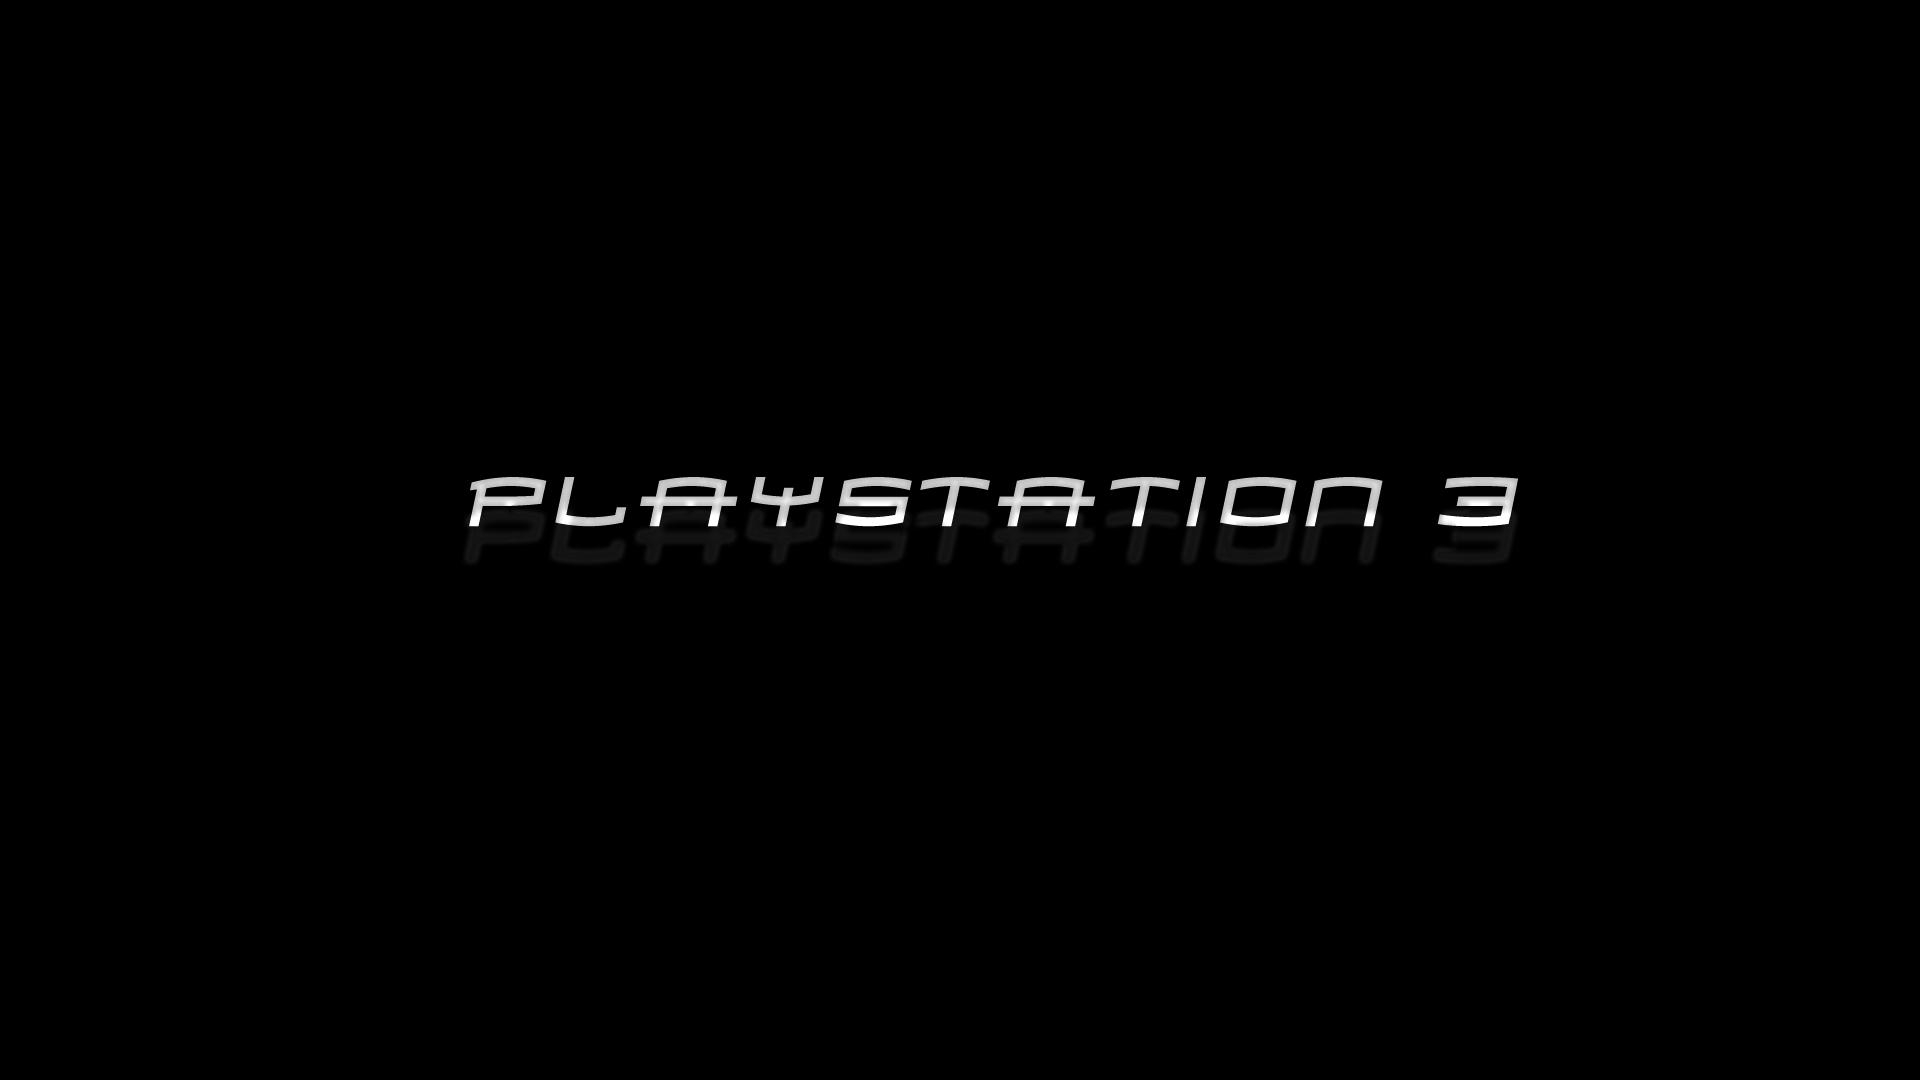 Wallpaper download ps3 - 1920x1080 Ps3 Logo Playstation 3 Wallpaper Background Full Hd 1080p